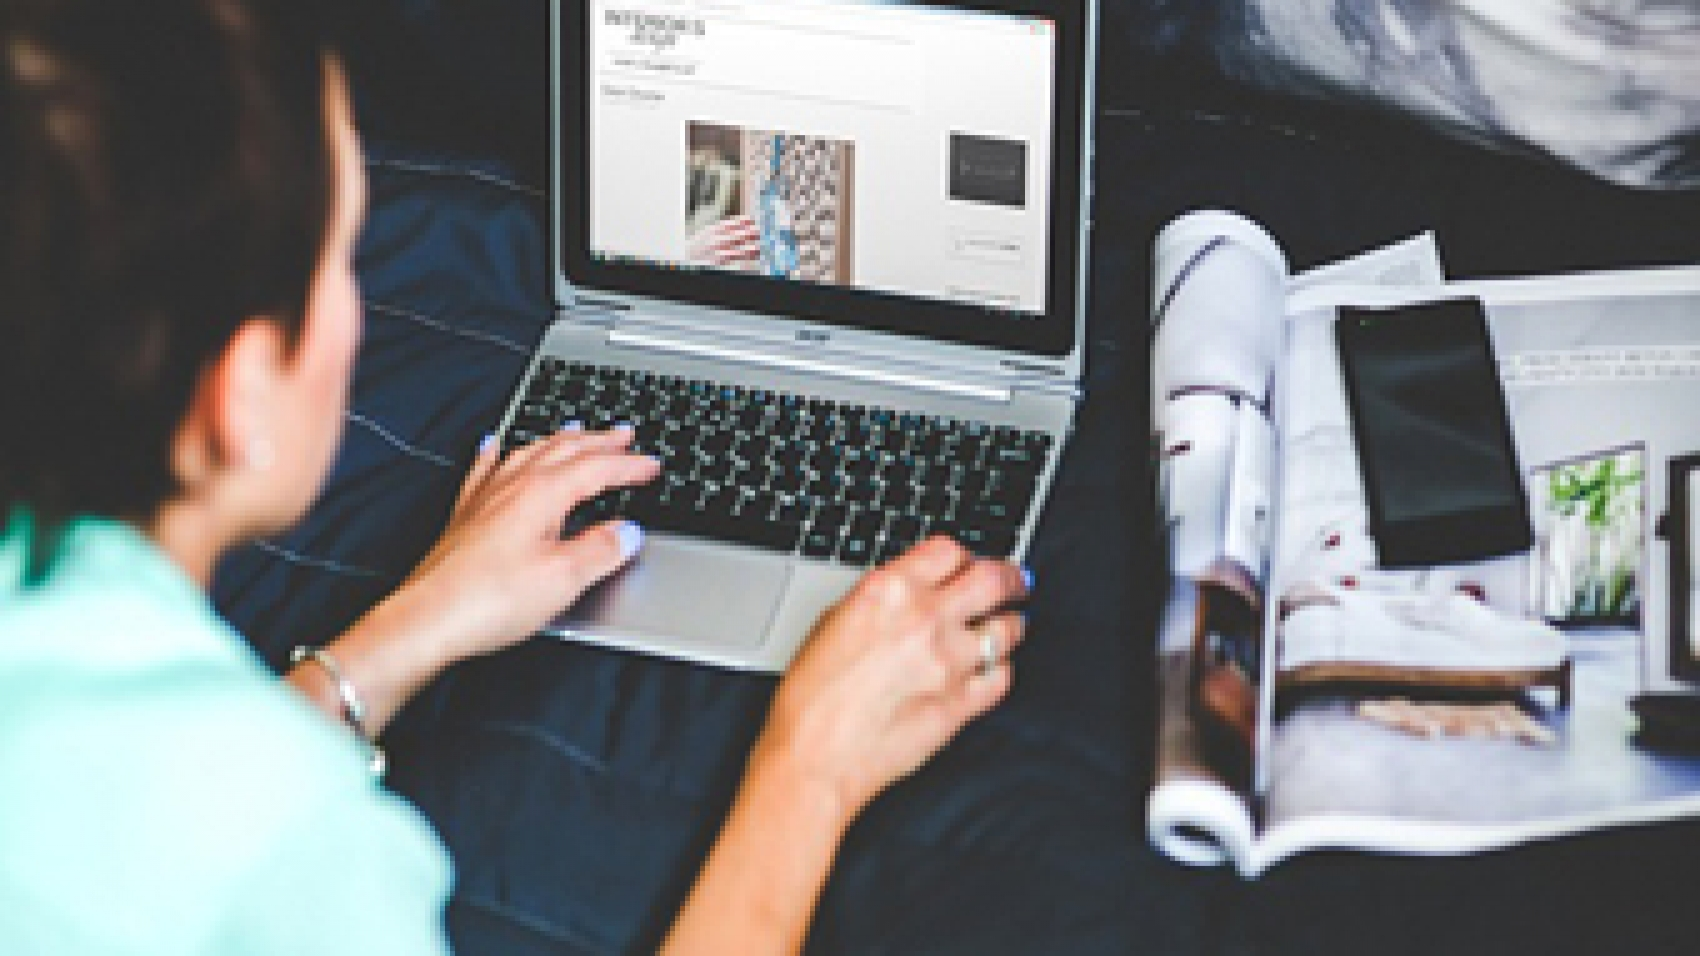 A Woman Reading an Blog on Her Laptop